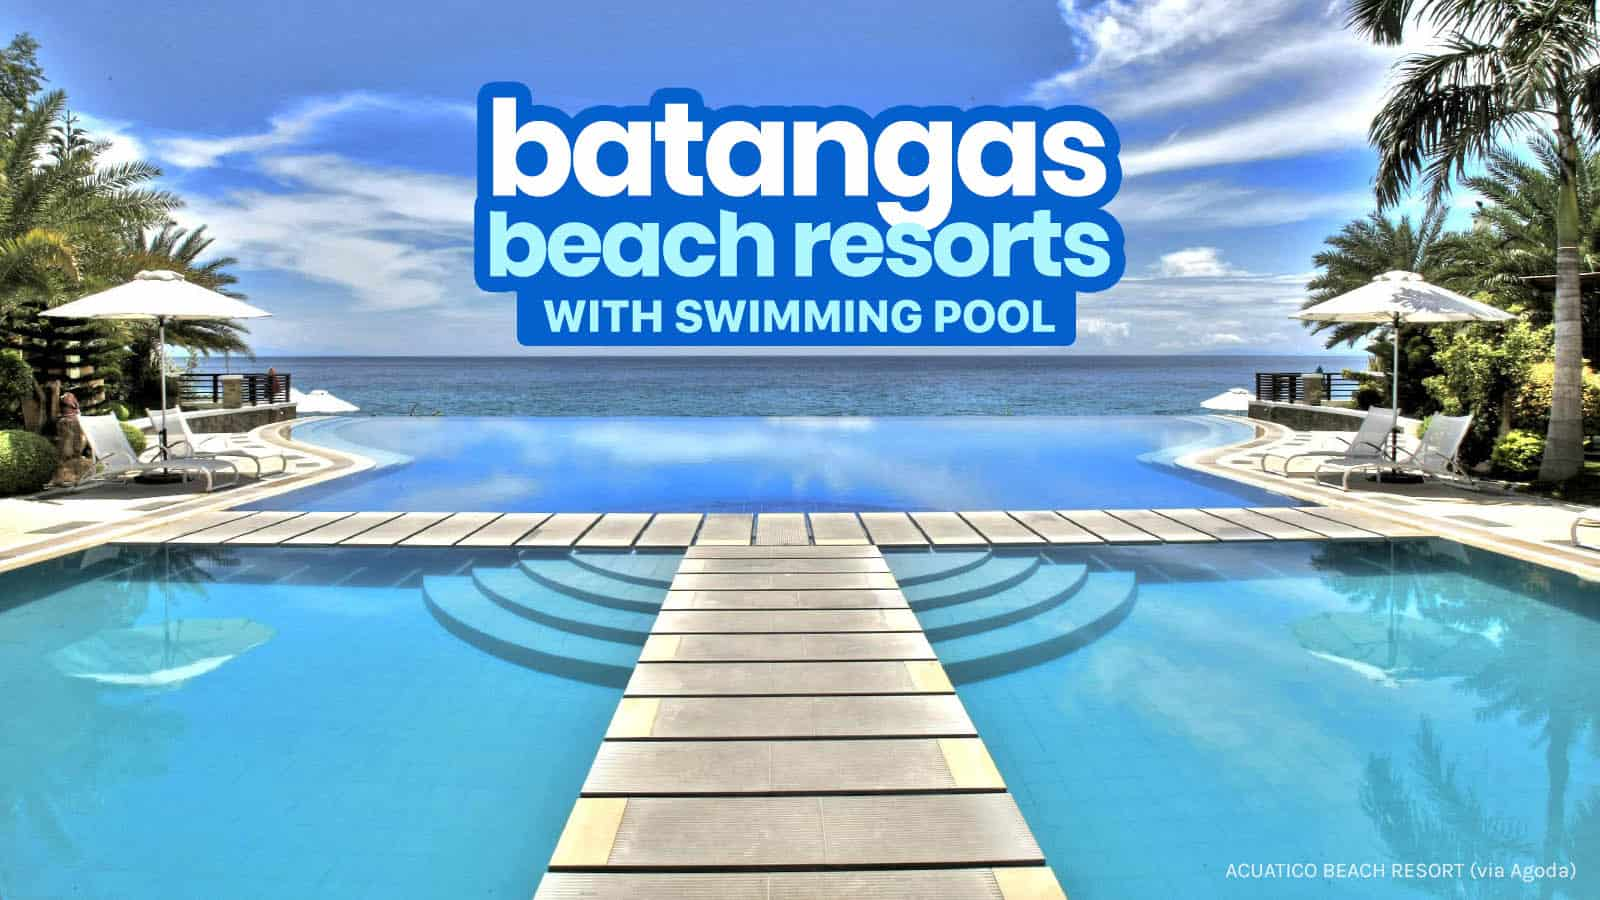 TOP 15 BATANGAS BEACH RESORTS 2019 | The Poor Traveler